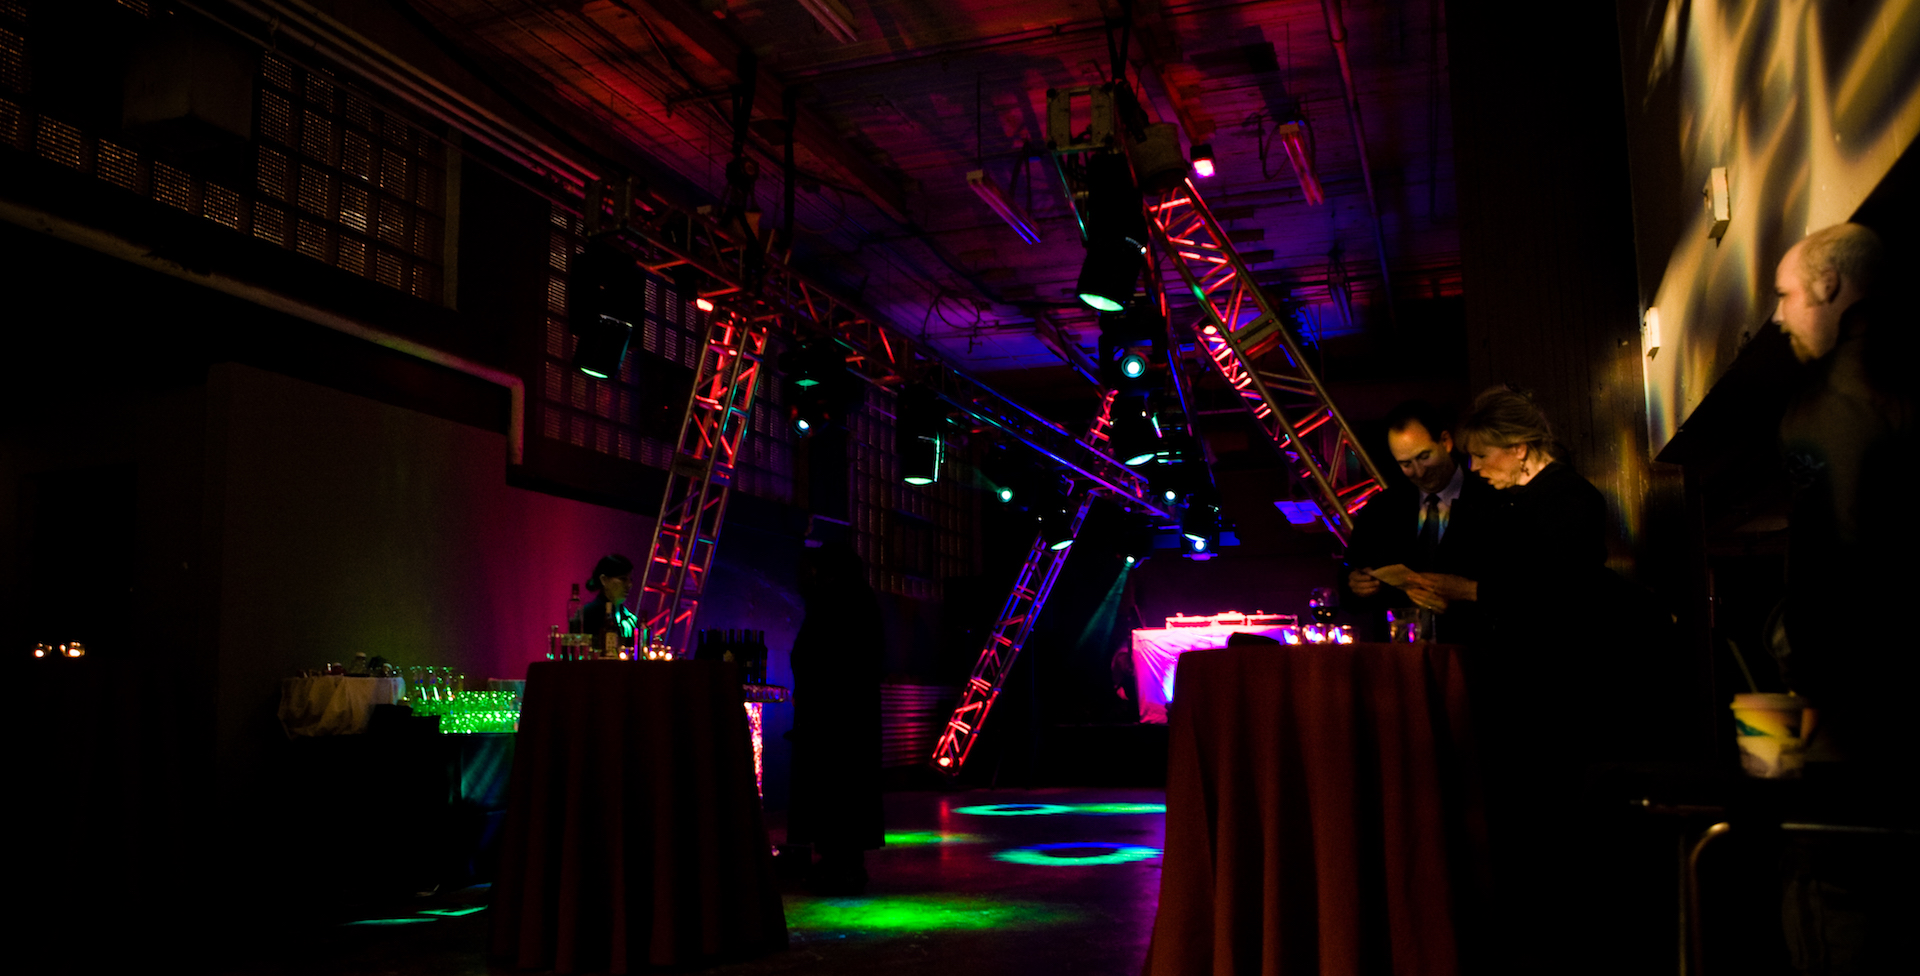 Truss sticks at odd angles and breakup gobos create a mysterious and exciting atmposphere for a corporate party